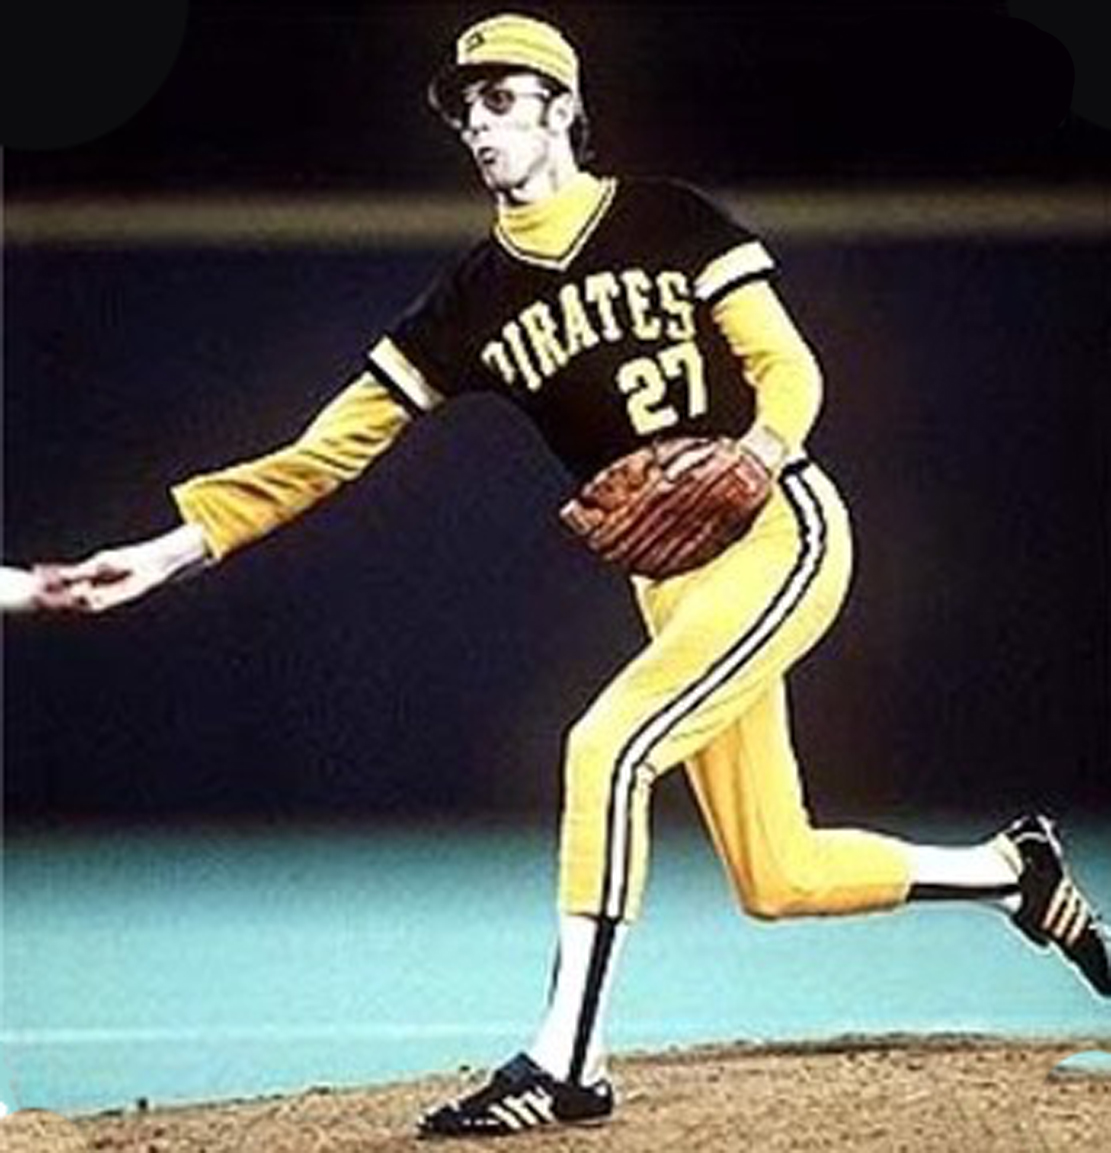 Gratuitous image of former Pittsburgh Pirate reliever Kent Tekulve, who looked sort of like a stick insect in sunglasses